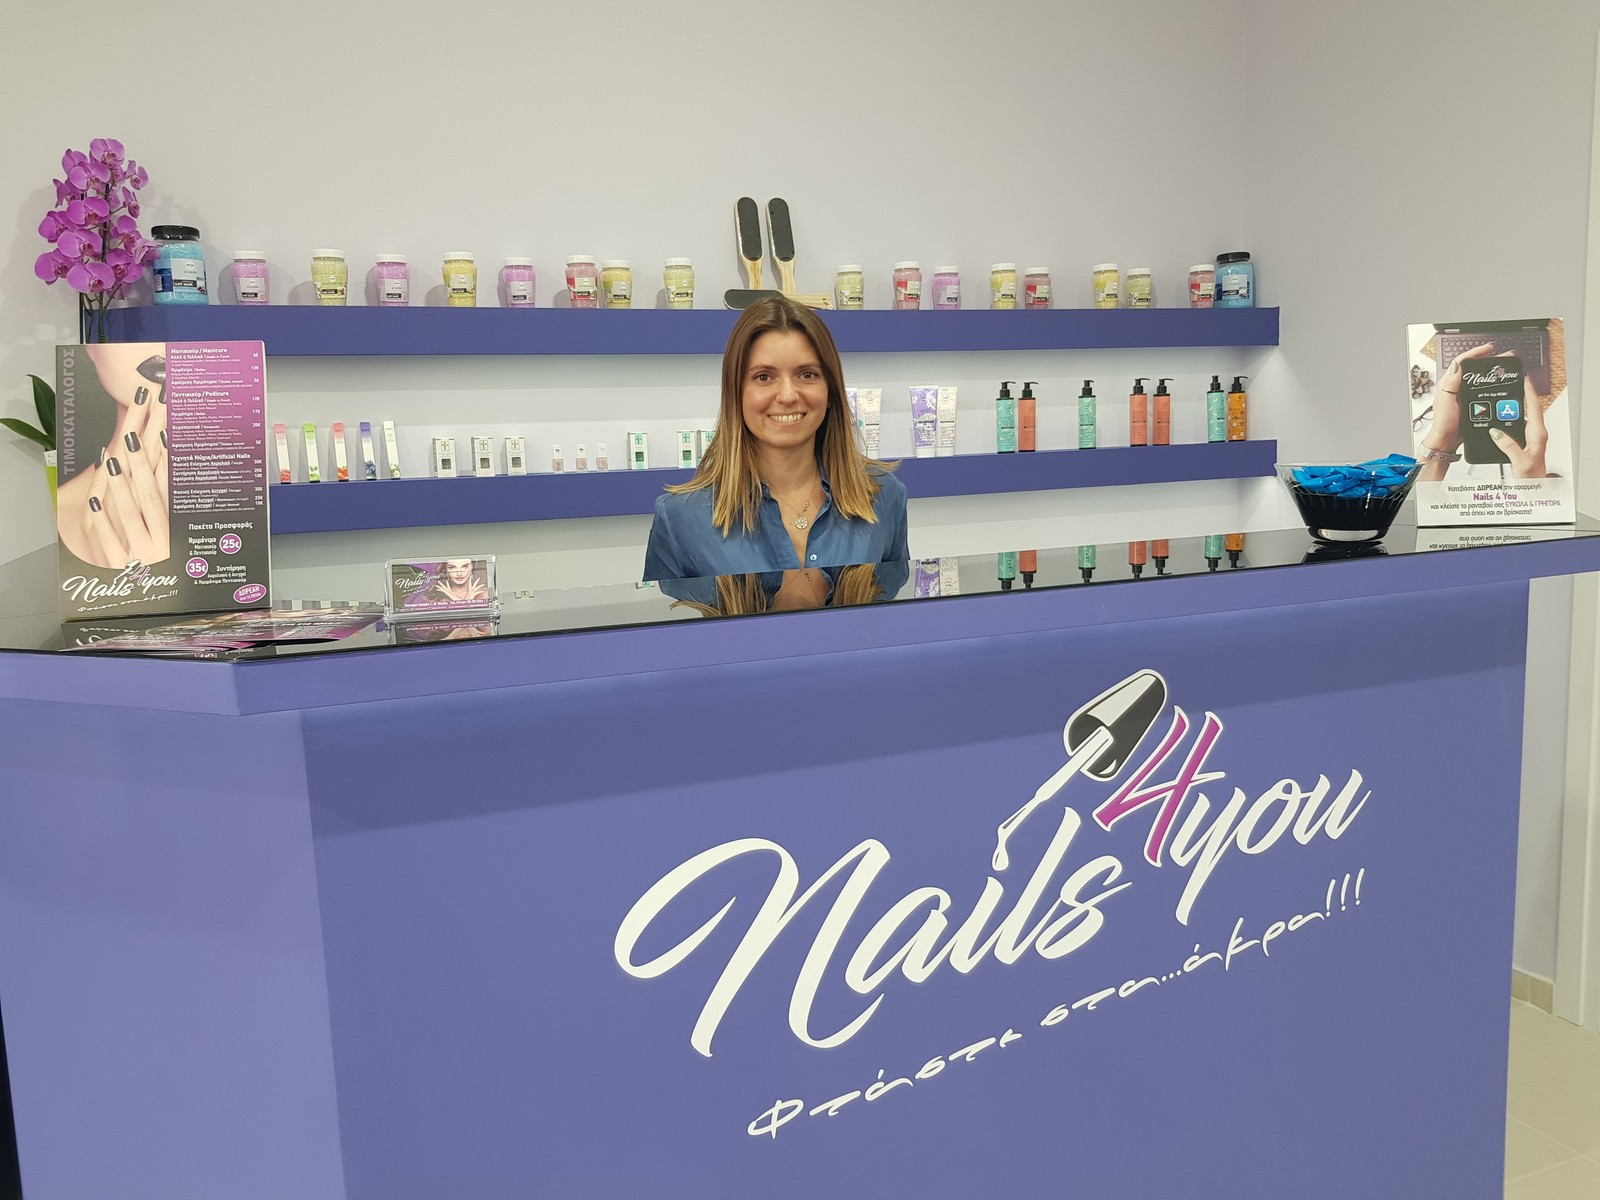 Nails 4 You franchise